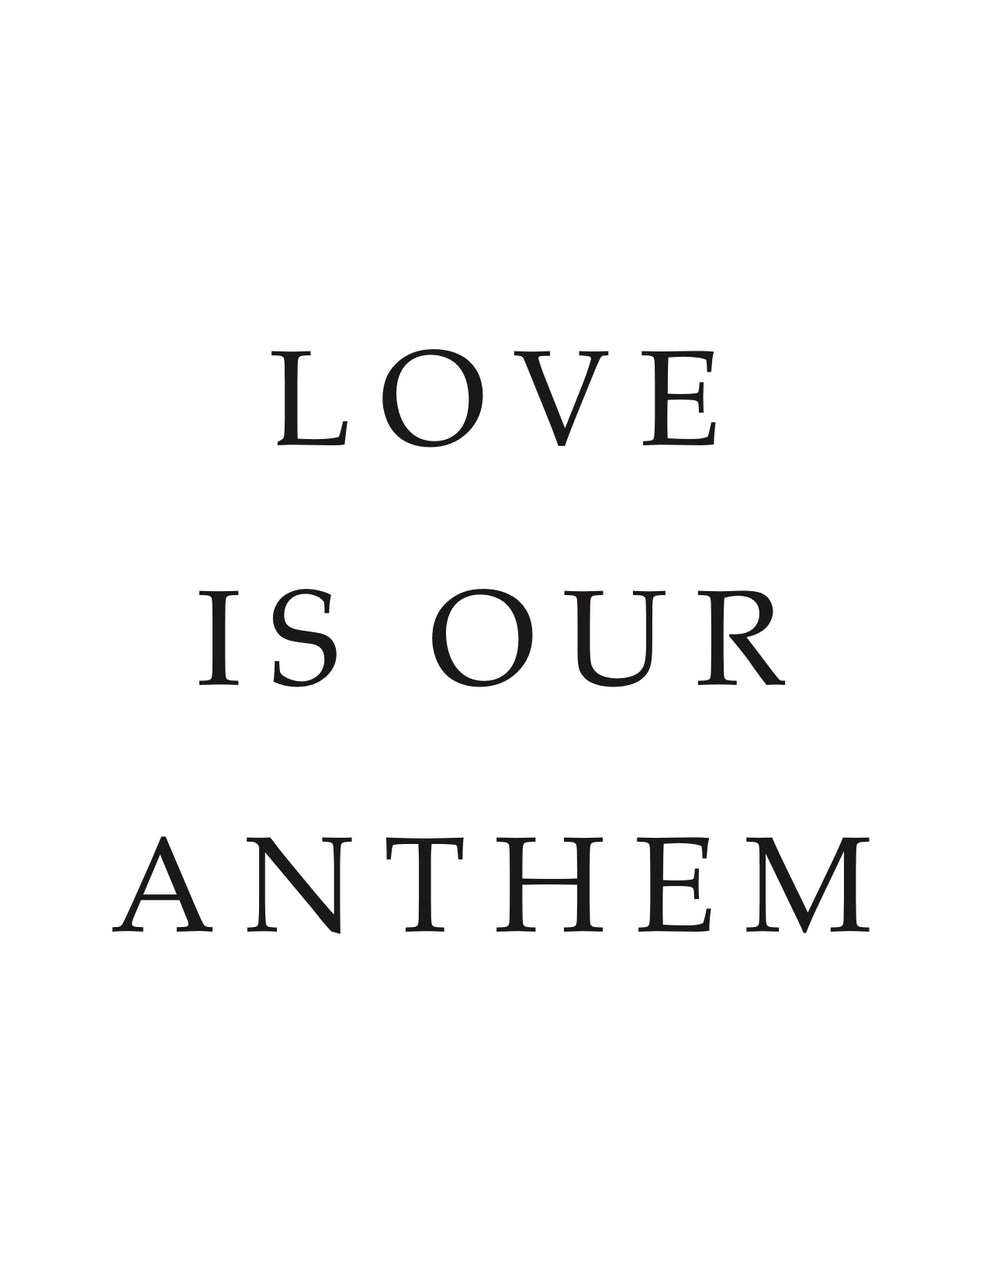 Love is Our Anthem Printable.